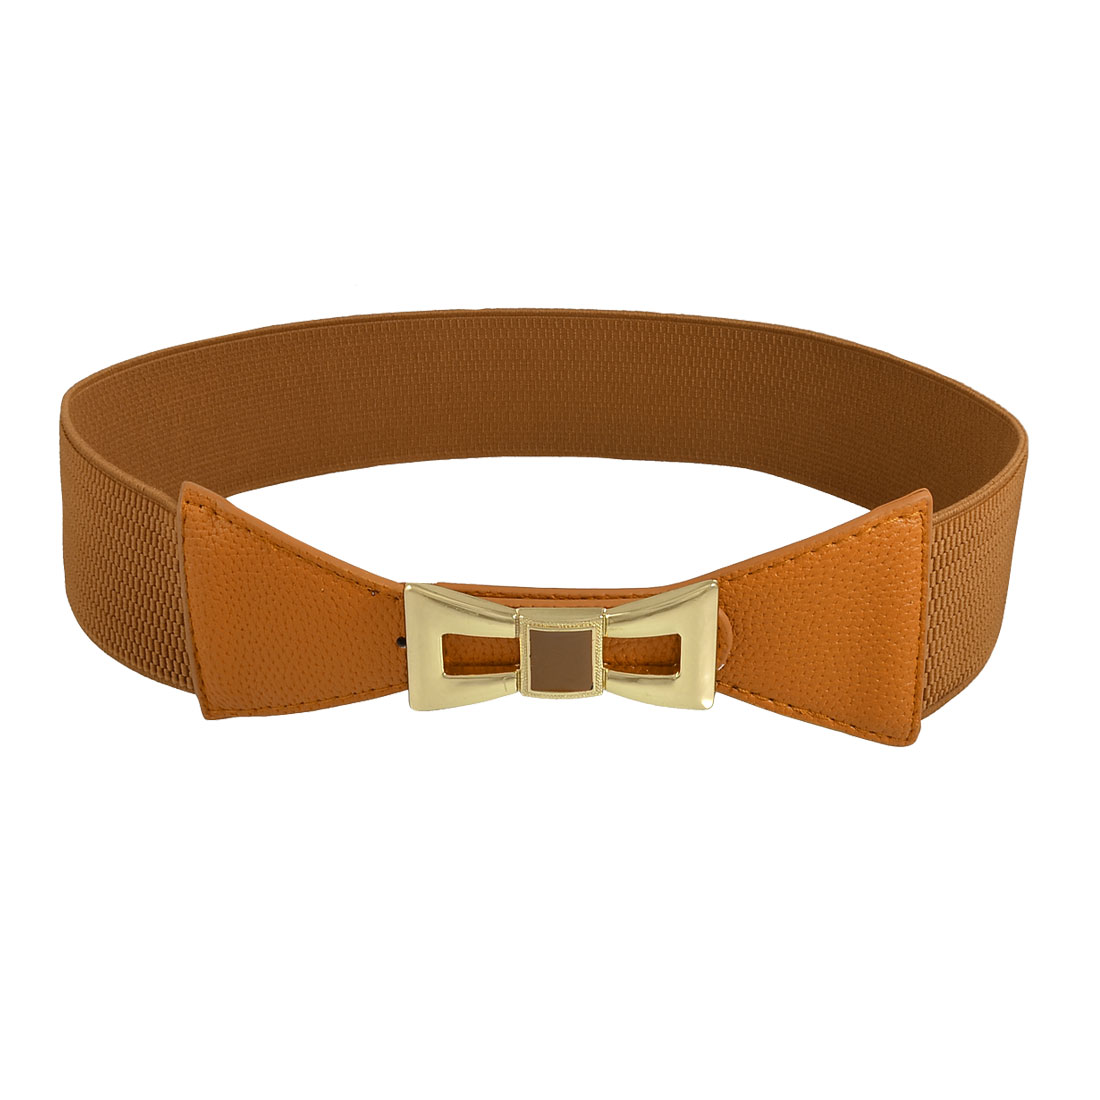 Press Buckle Gold Tone Metal Bowknot Adorned Brown Elastic Waist Belt